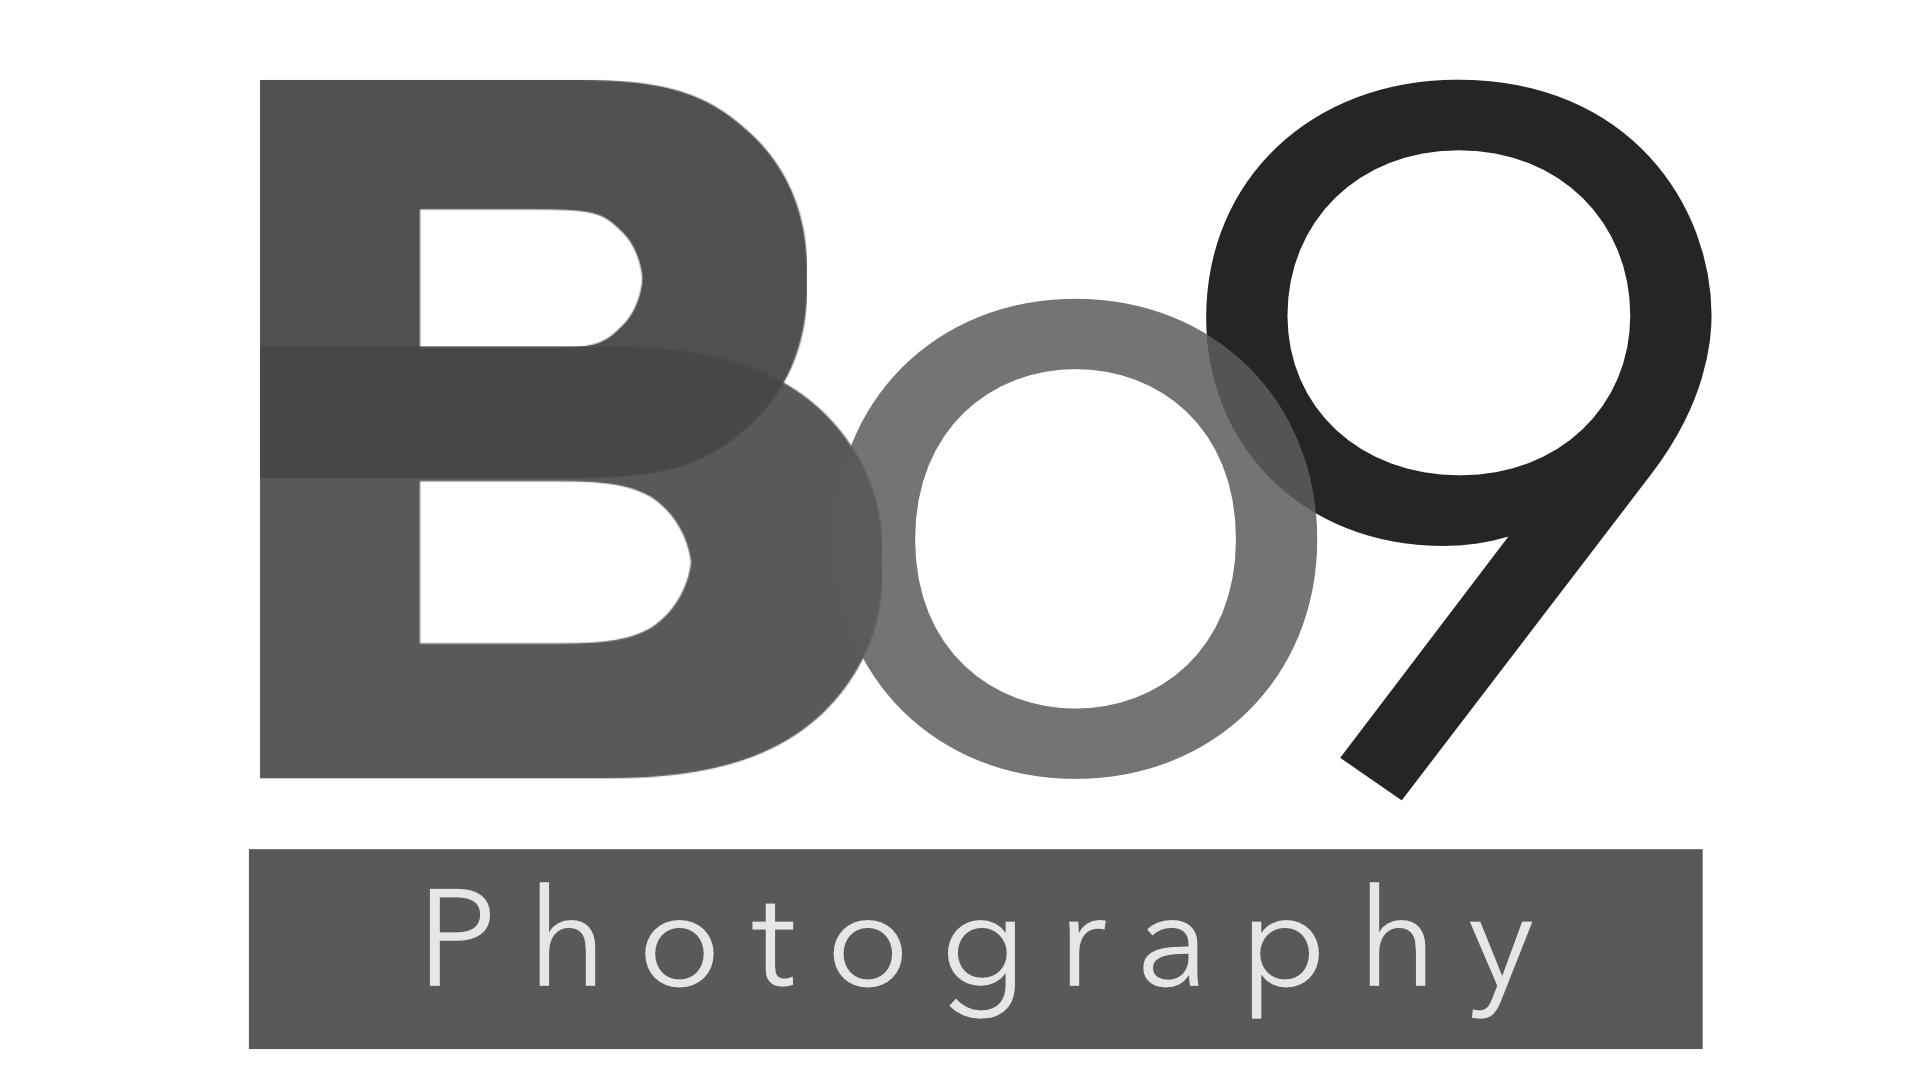 Bo9 Photography